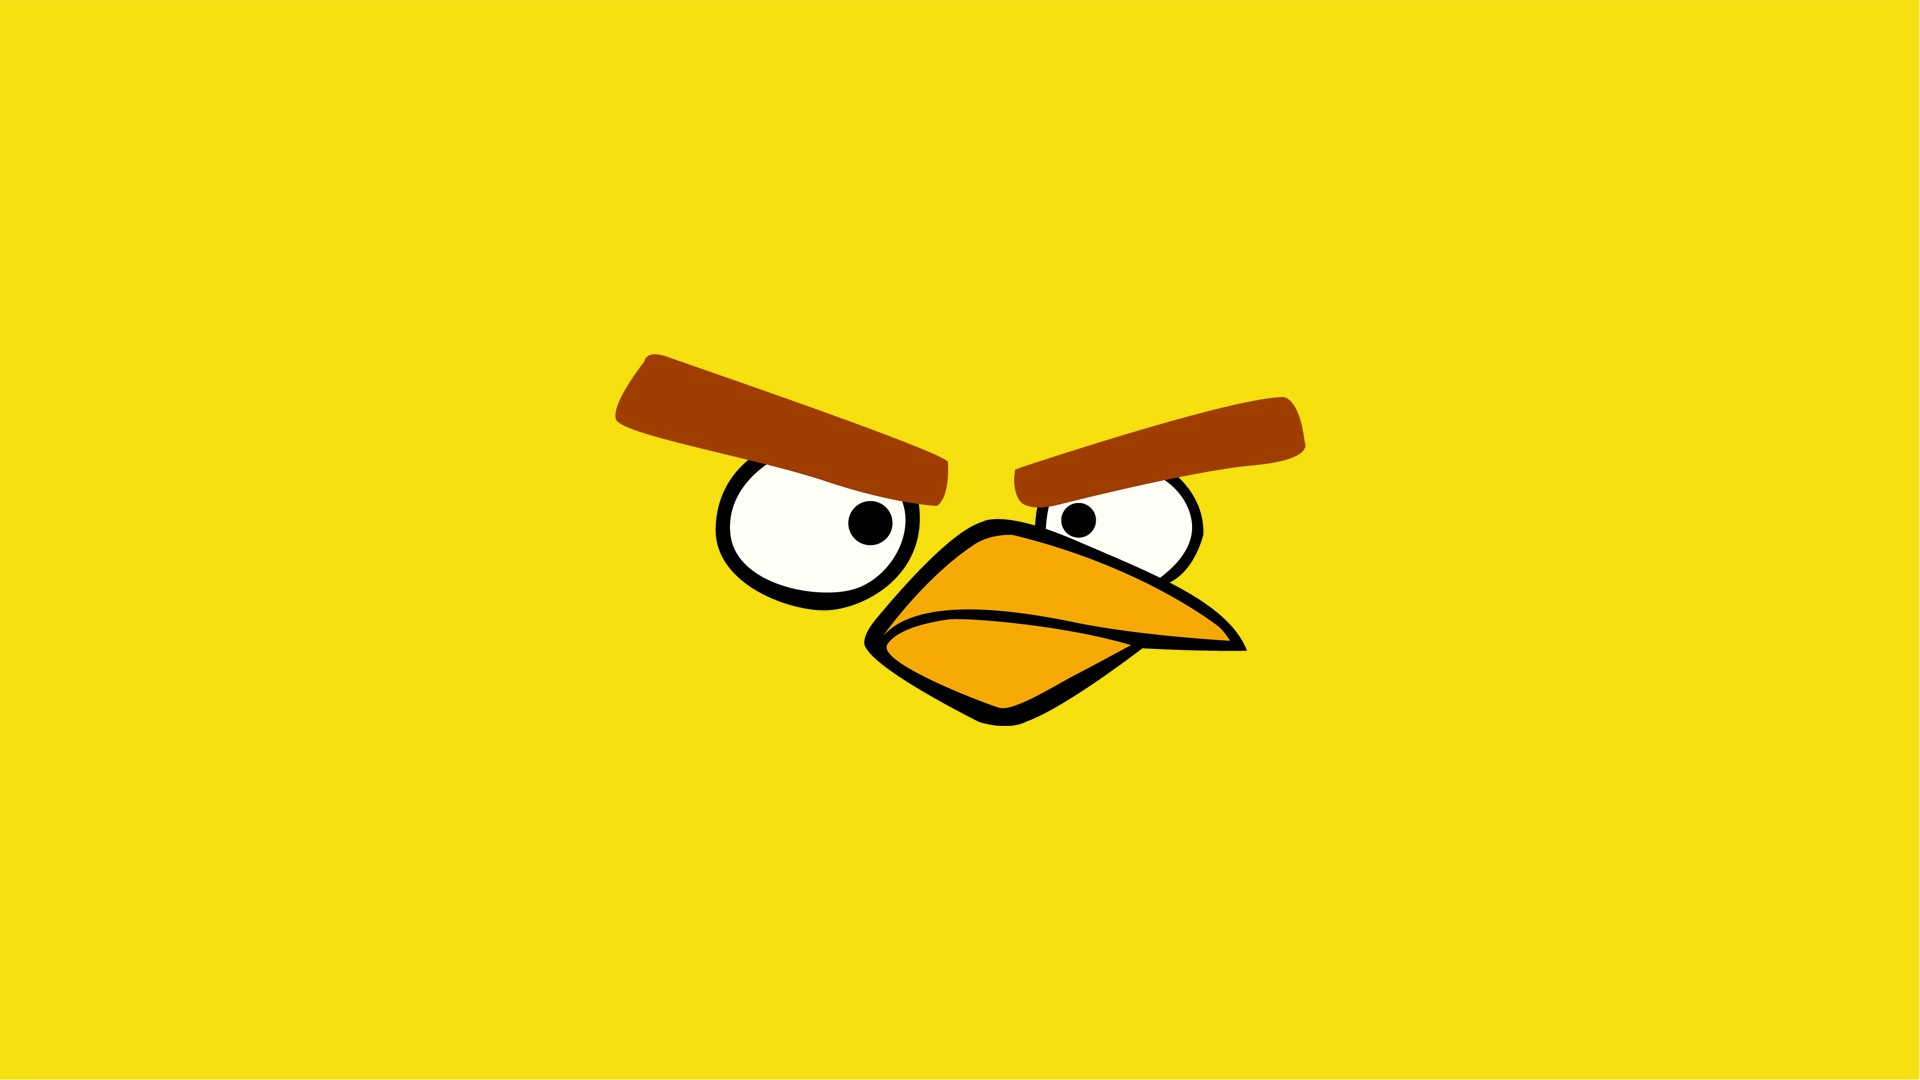 Download yellow bird hd wallpaper angry birds wallpapers yellow bird wallpaper voltagebd Gallery